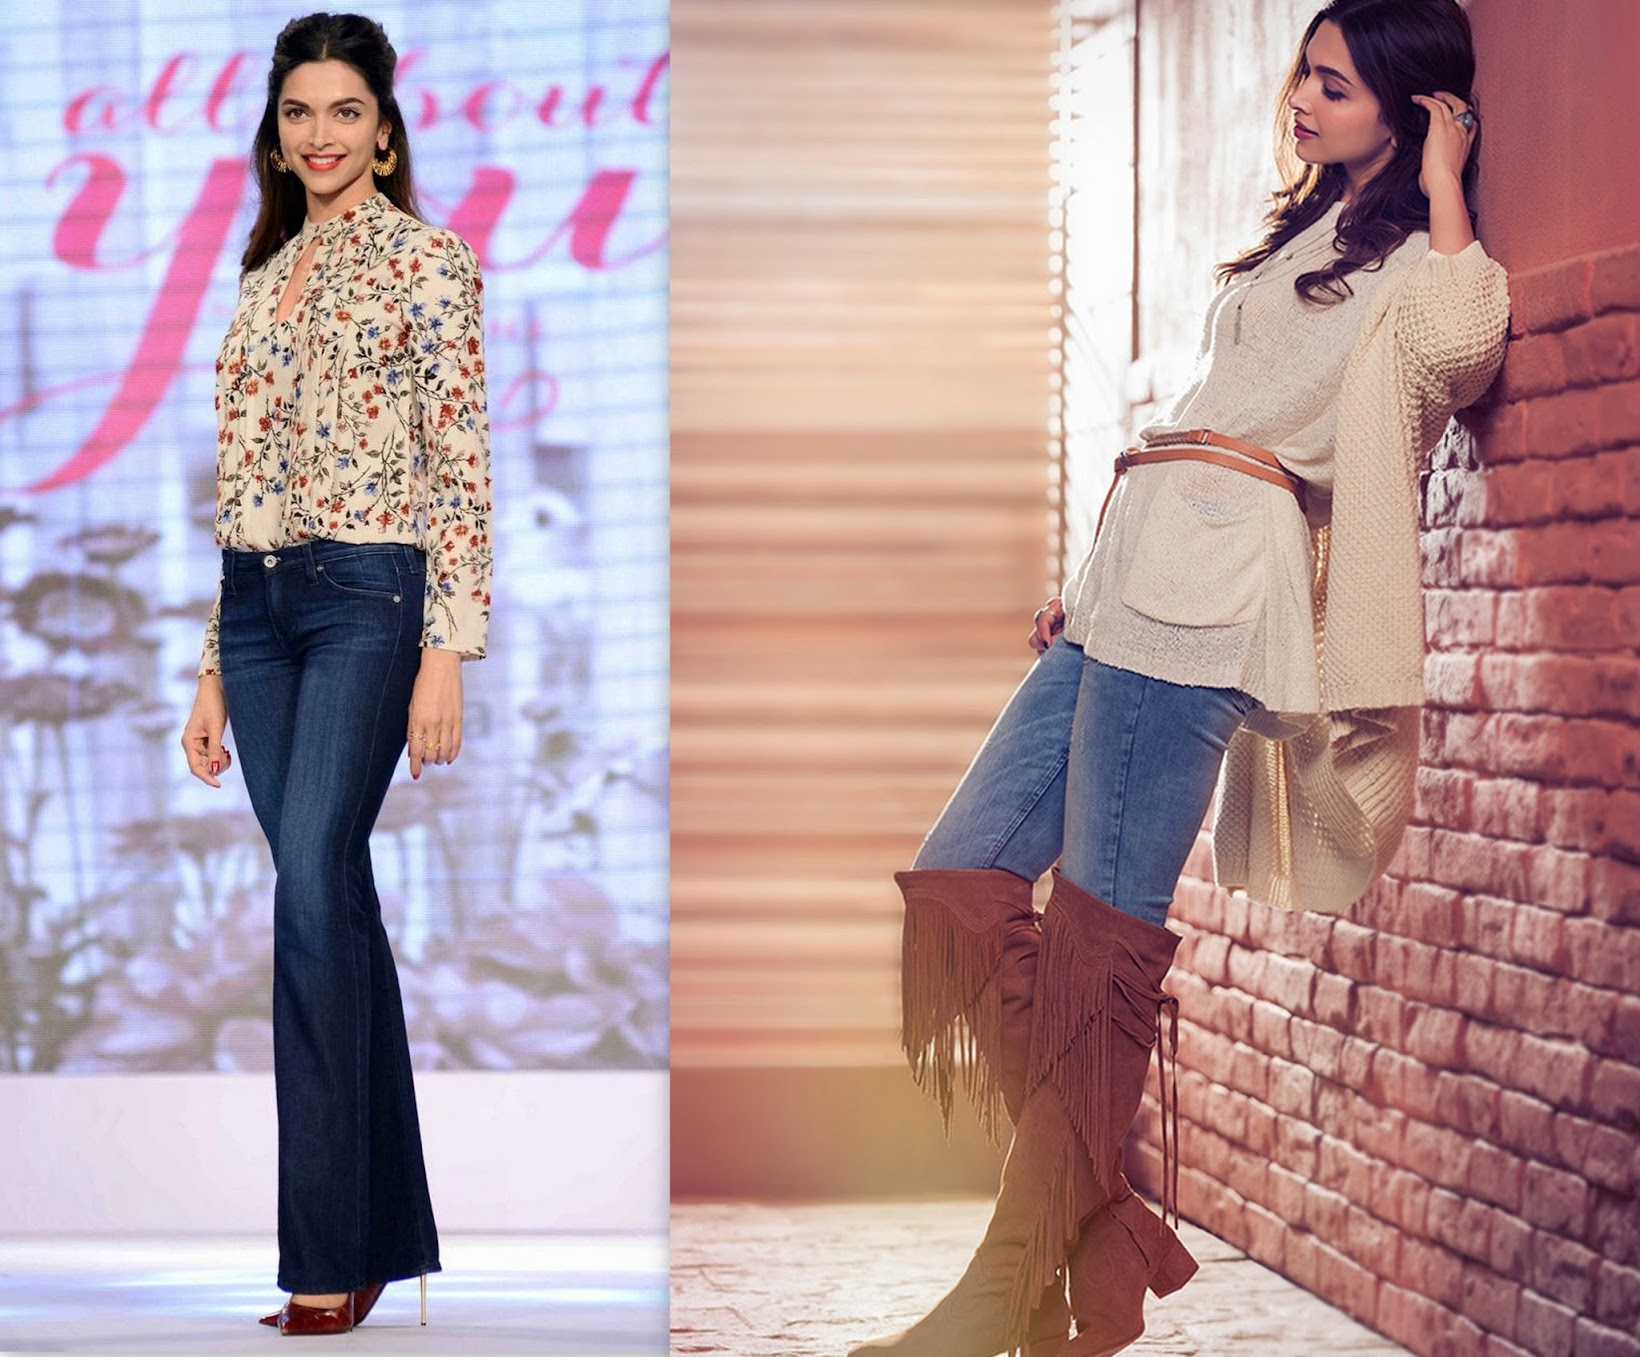 All About you from Deepika Padukone